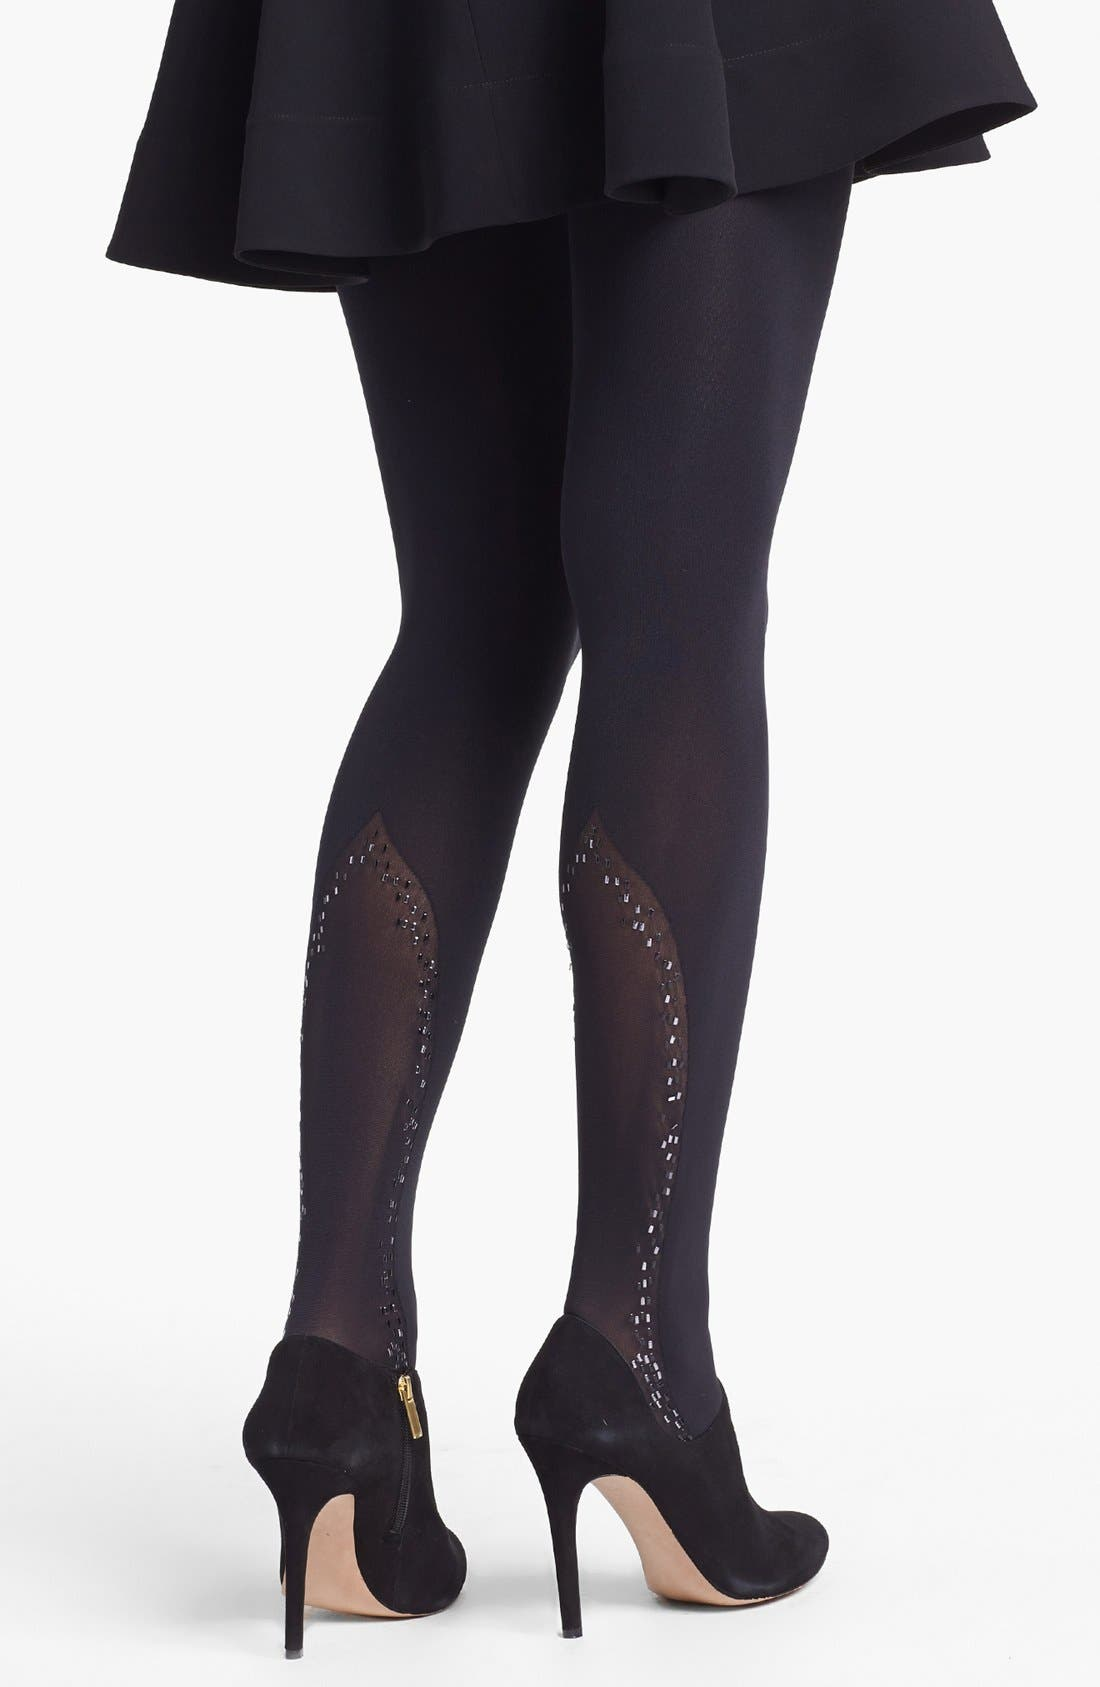 Alternate Image 1 Selected - Pretty Polly 'Touch' Embellished Tights